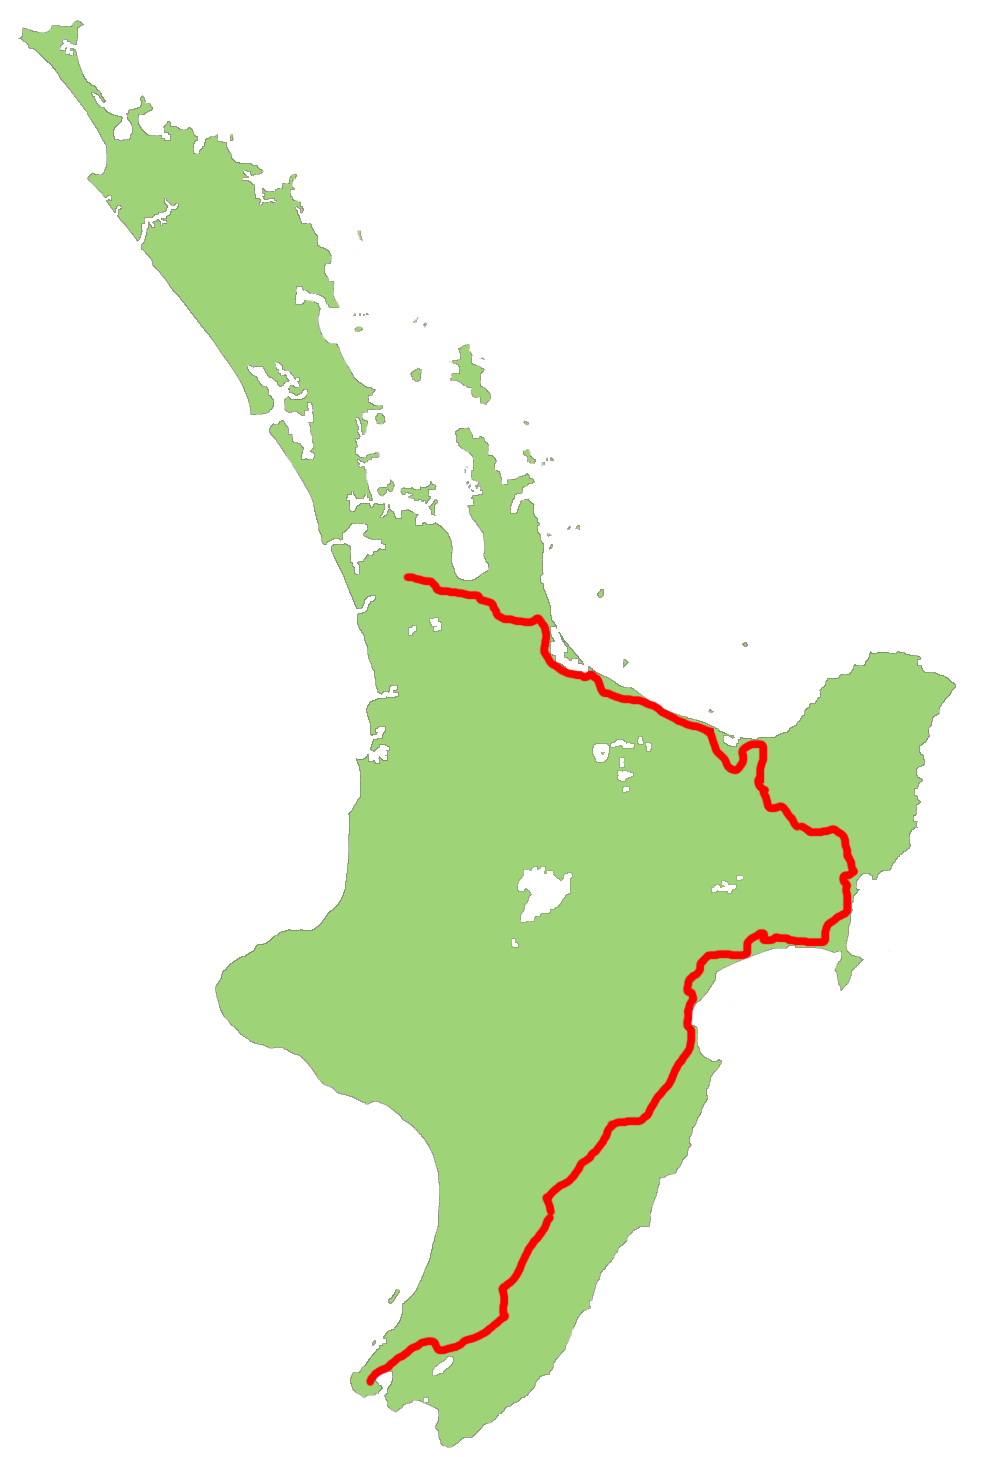 New Zealand Highway Map.New Zealand State Highway 2 Wikipedia